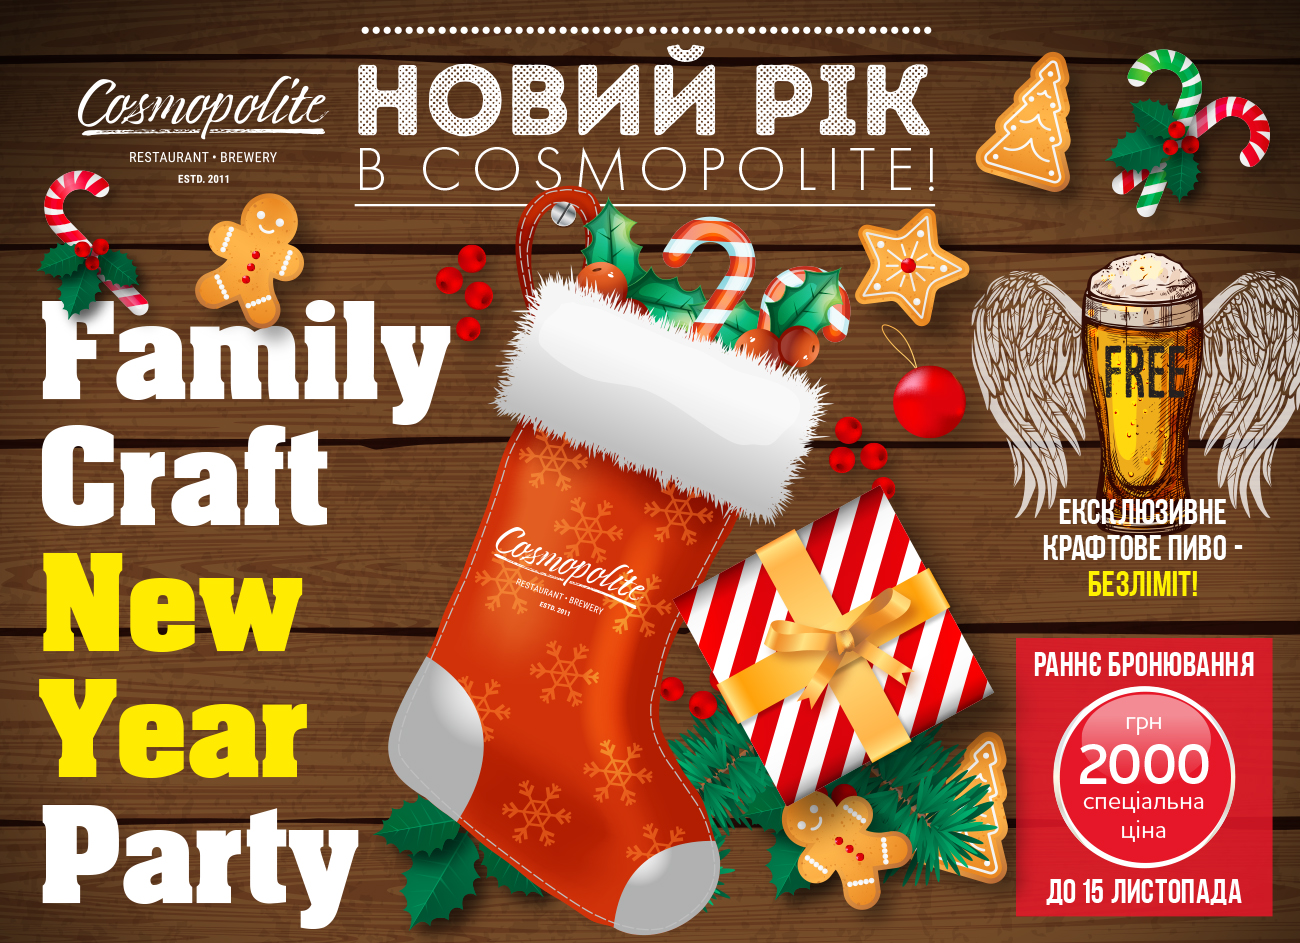 Family Craft New Year Party 2020. Ресторан-броварня Cosmopolite